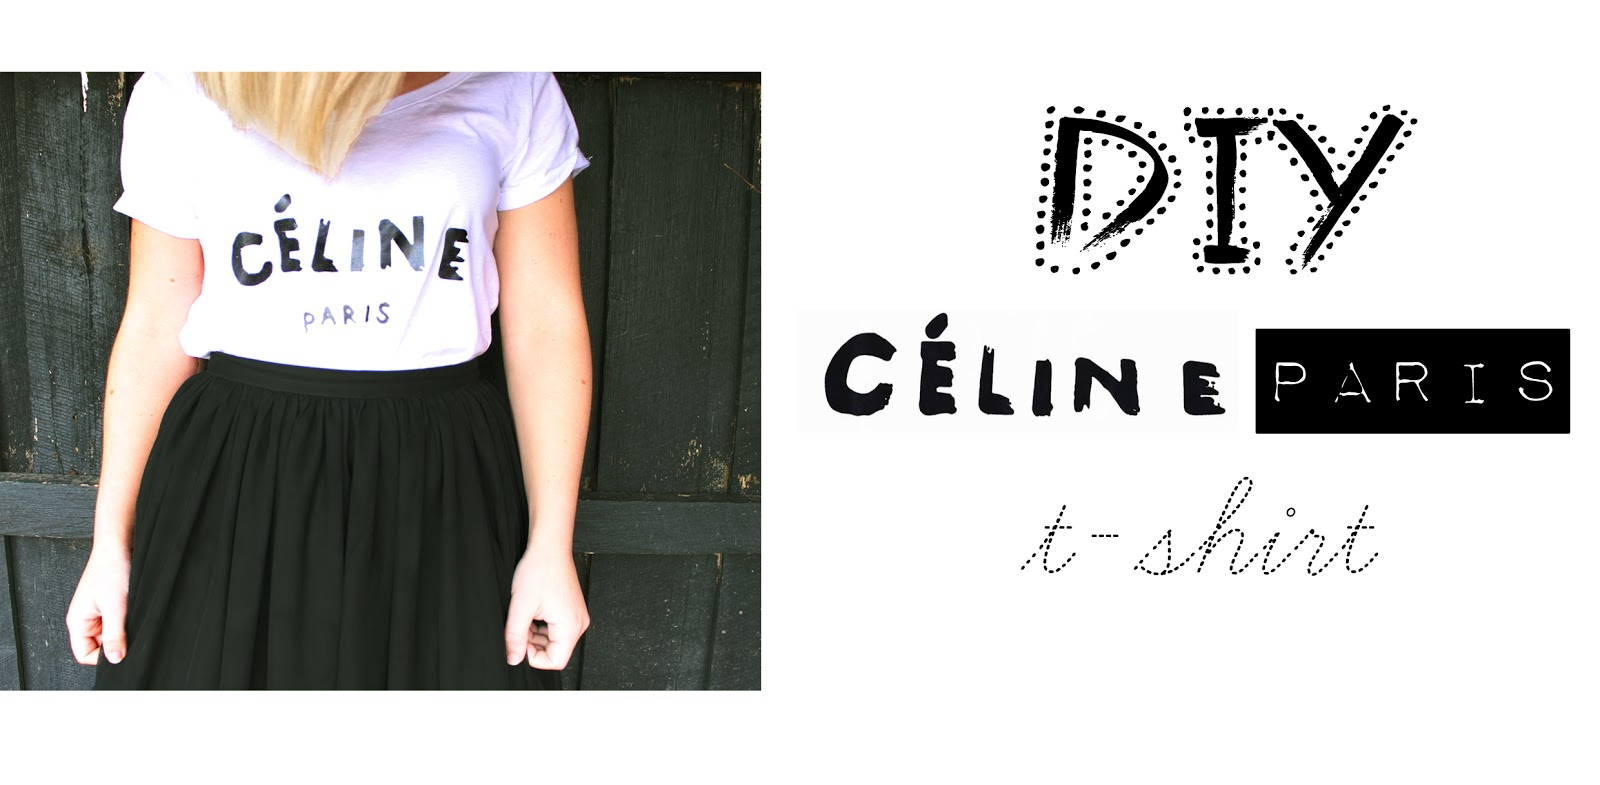 Design t shirt melbourne -  Billboards For The Luxury French Design House Of Celine Wearing The Distinctive Logo On Everything From Plain White Tee S To Bright Pink Beanies